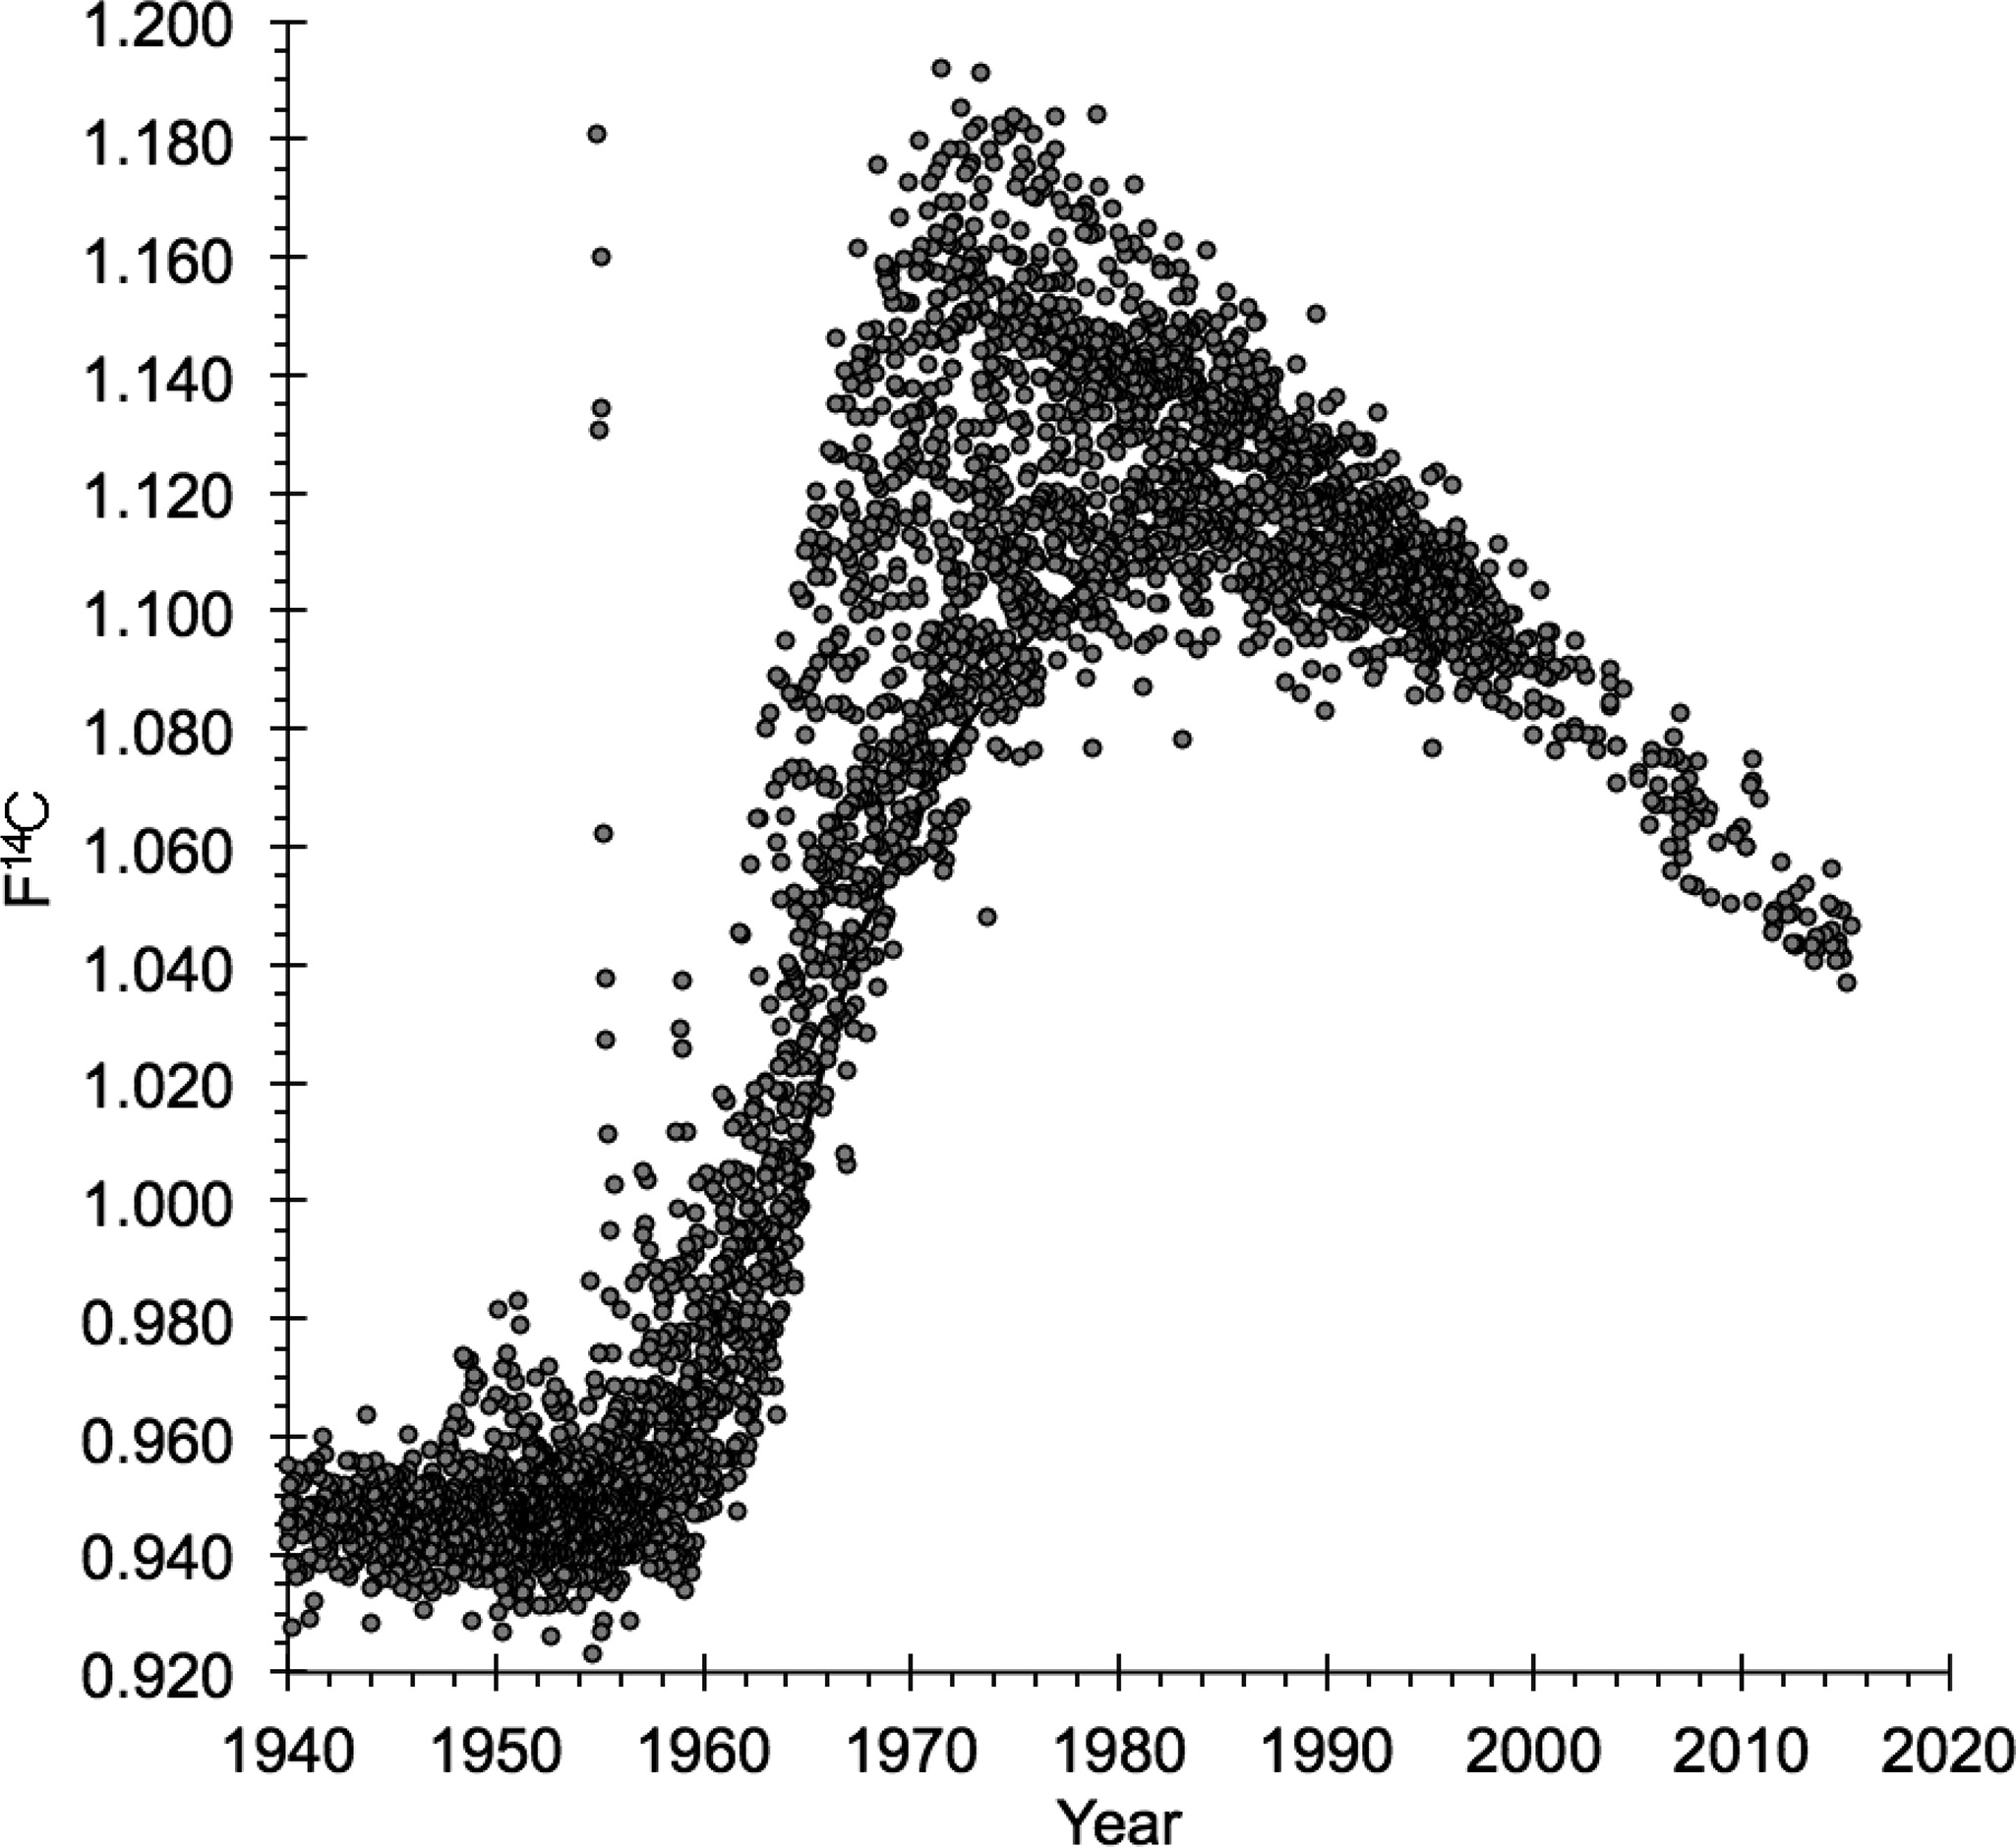 Radiocarbon dating upper lower limits